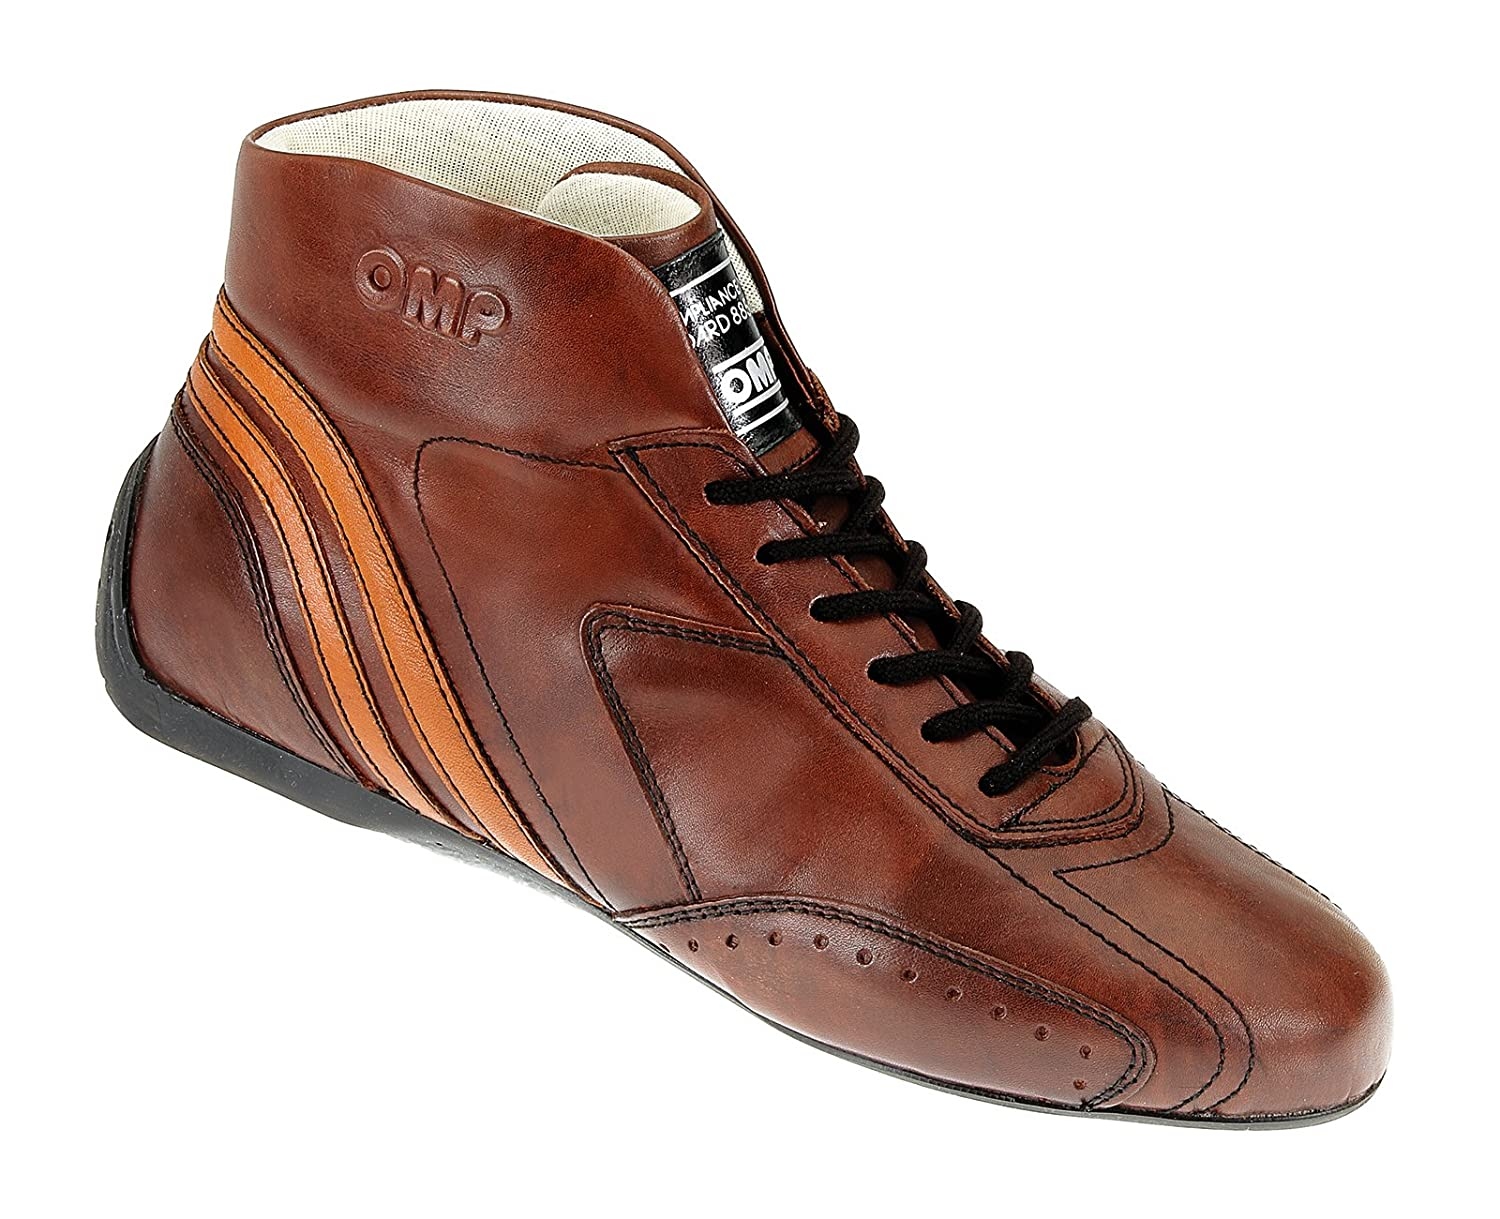 OMP OMPIC//78401545 Carrera Low Botines 45 Talla Marron